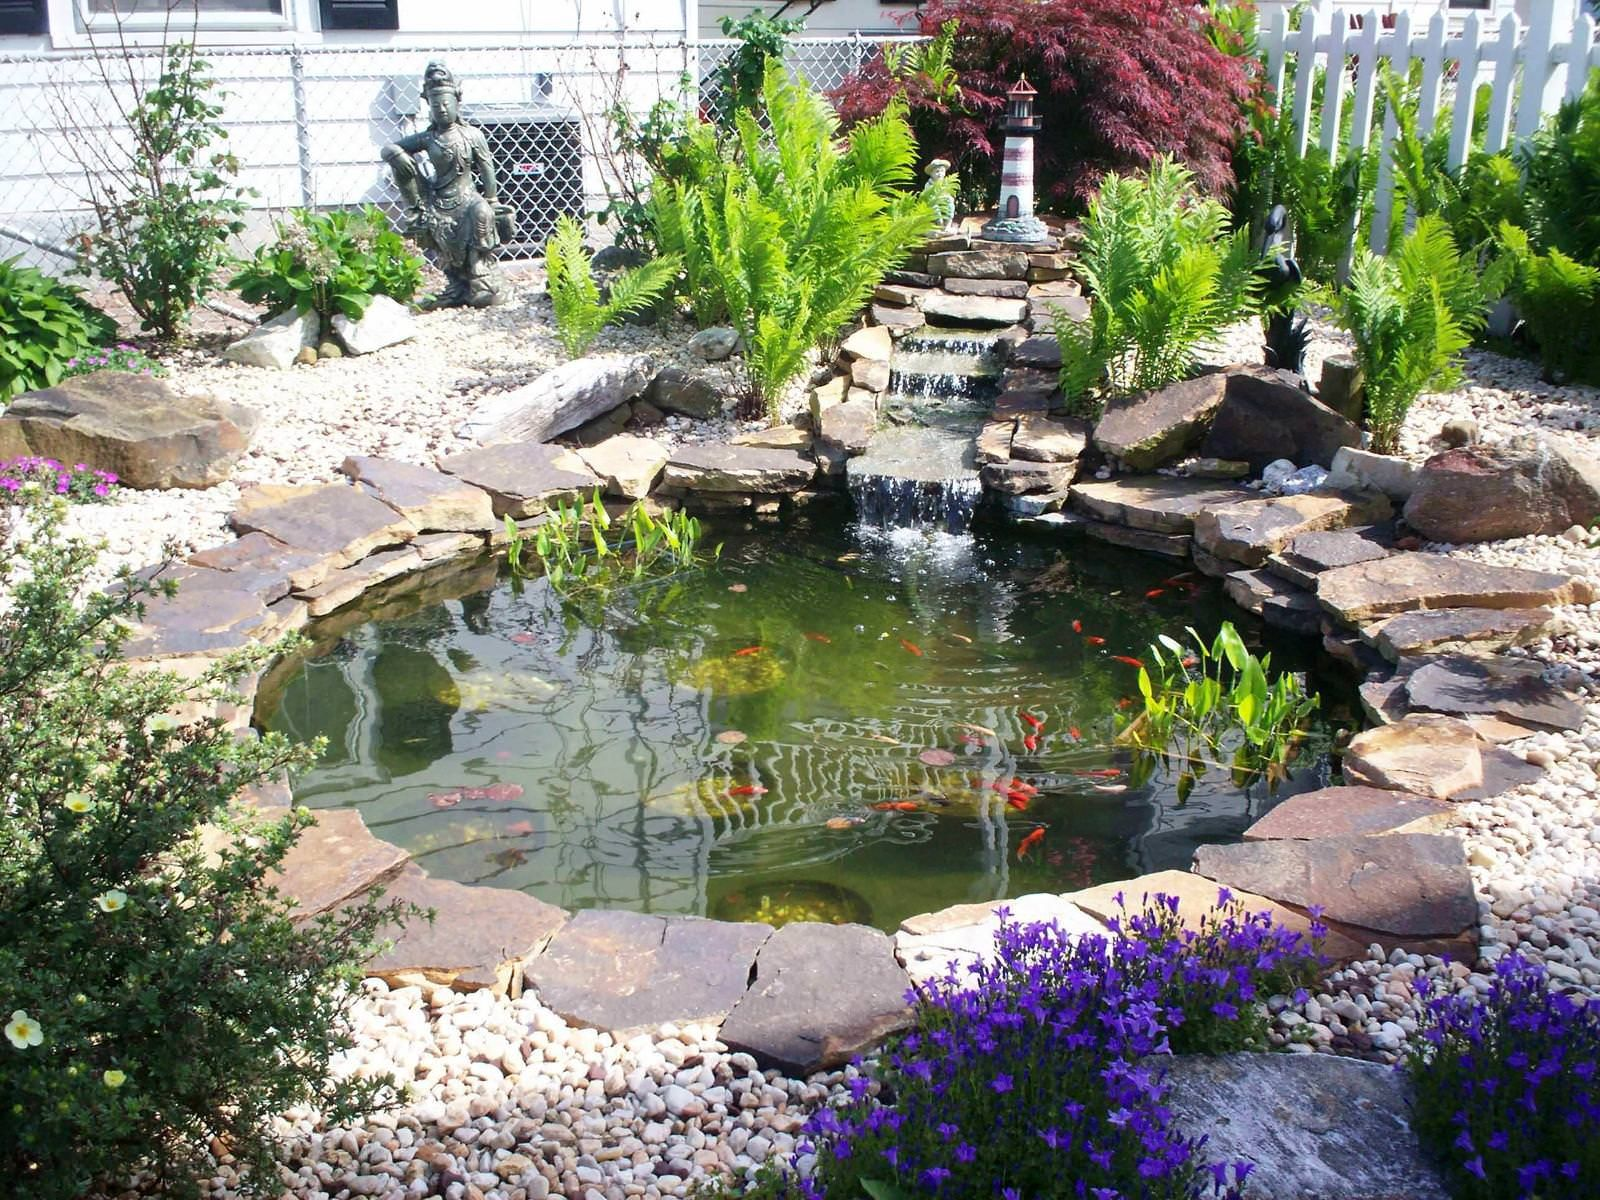 Small garden or backyard aquarium ideas practic ideas for Fish pond landscaping